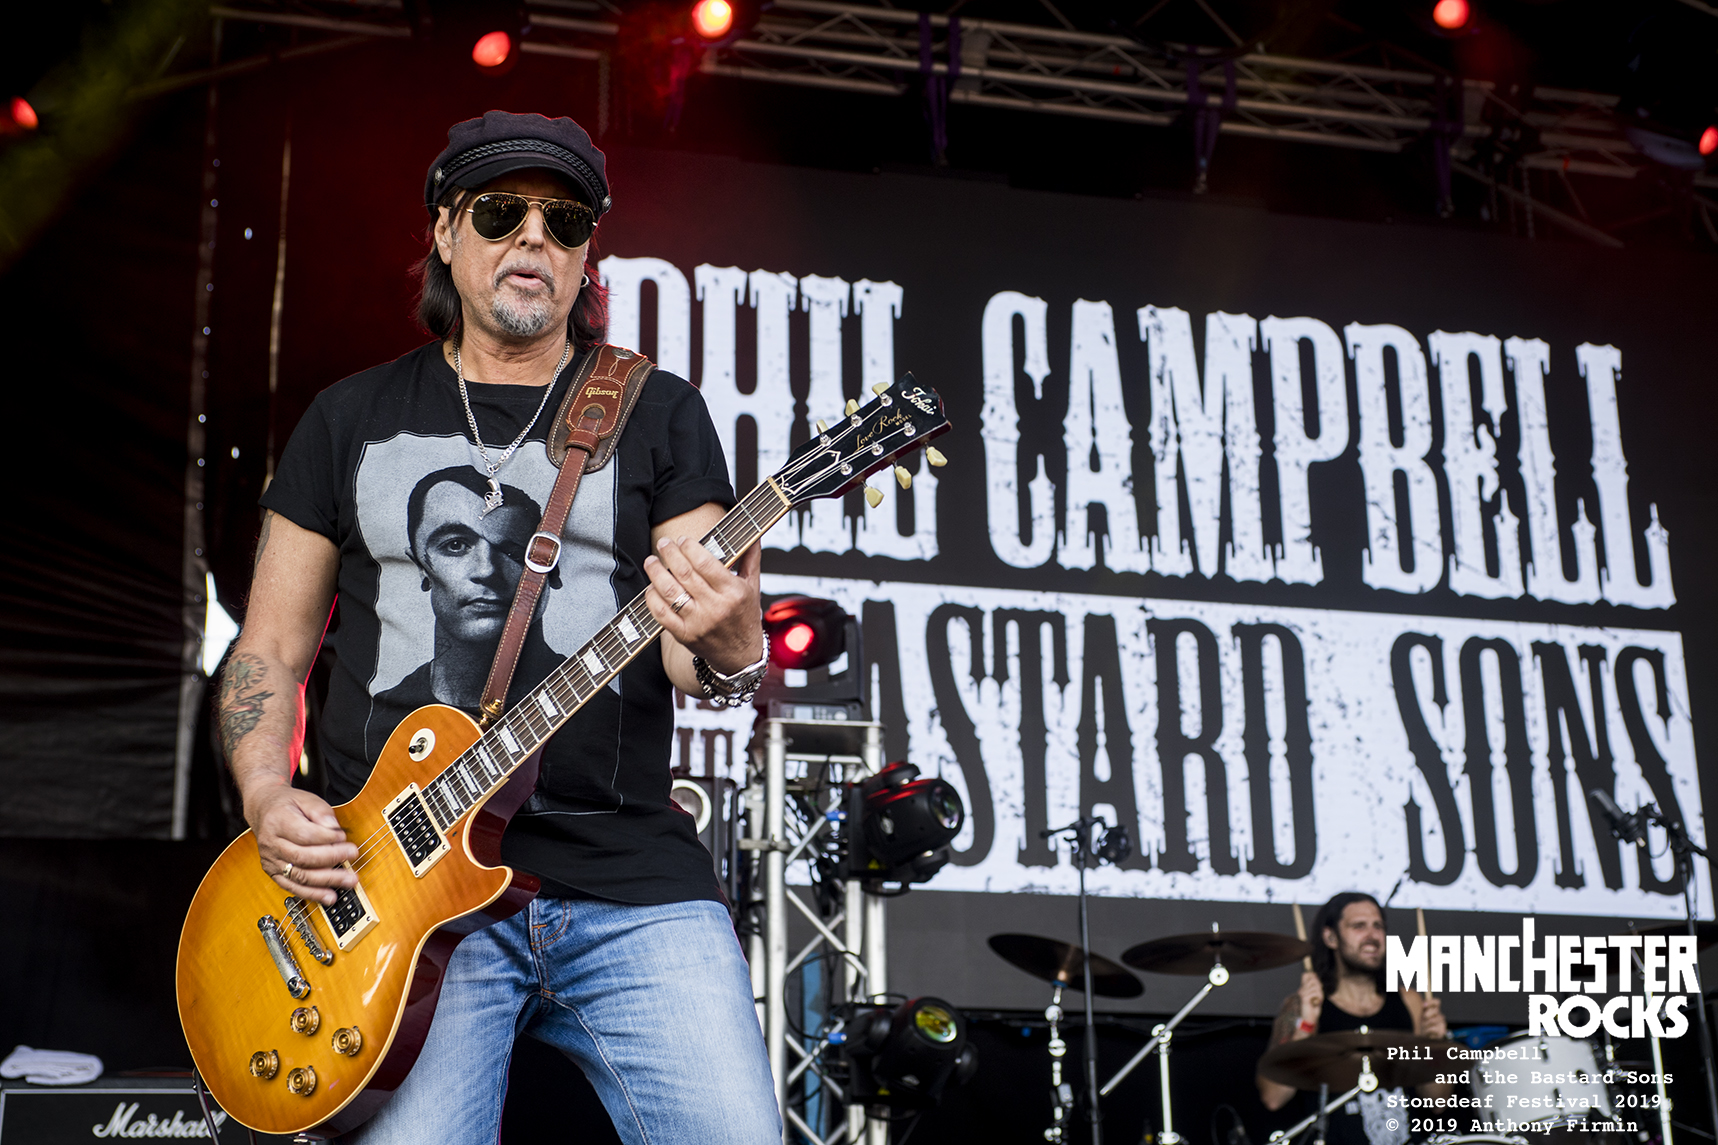 PhilCampbell-Stonedeaf-1019-small.jpg